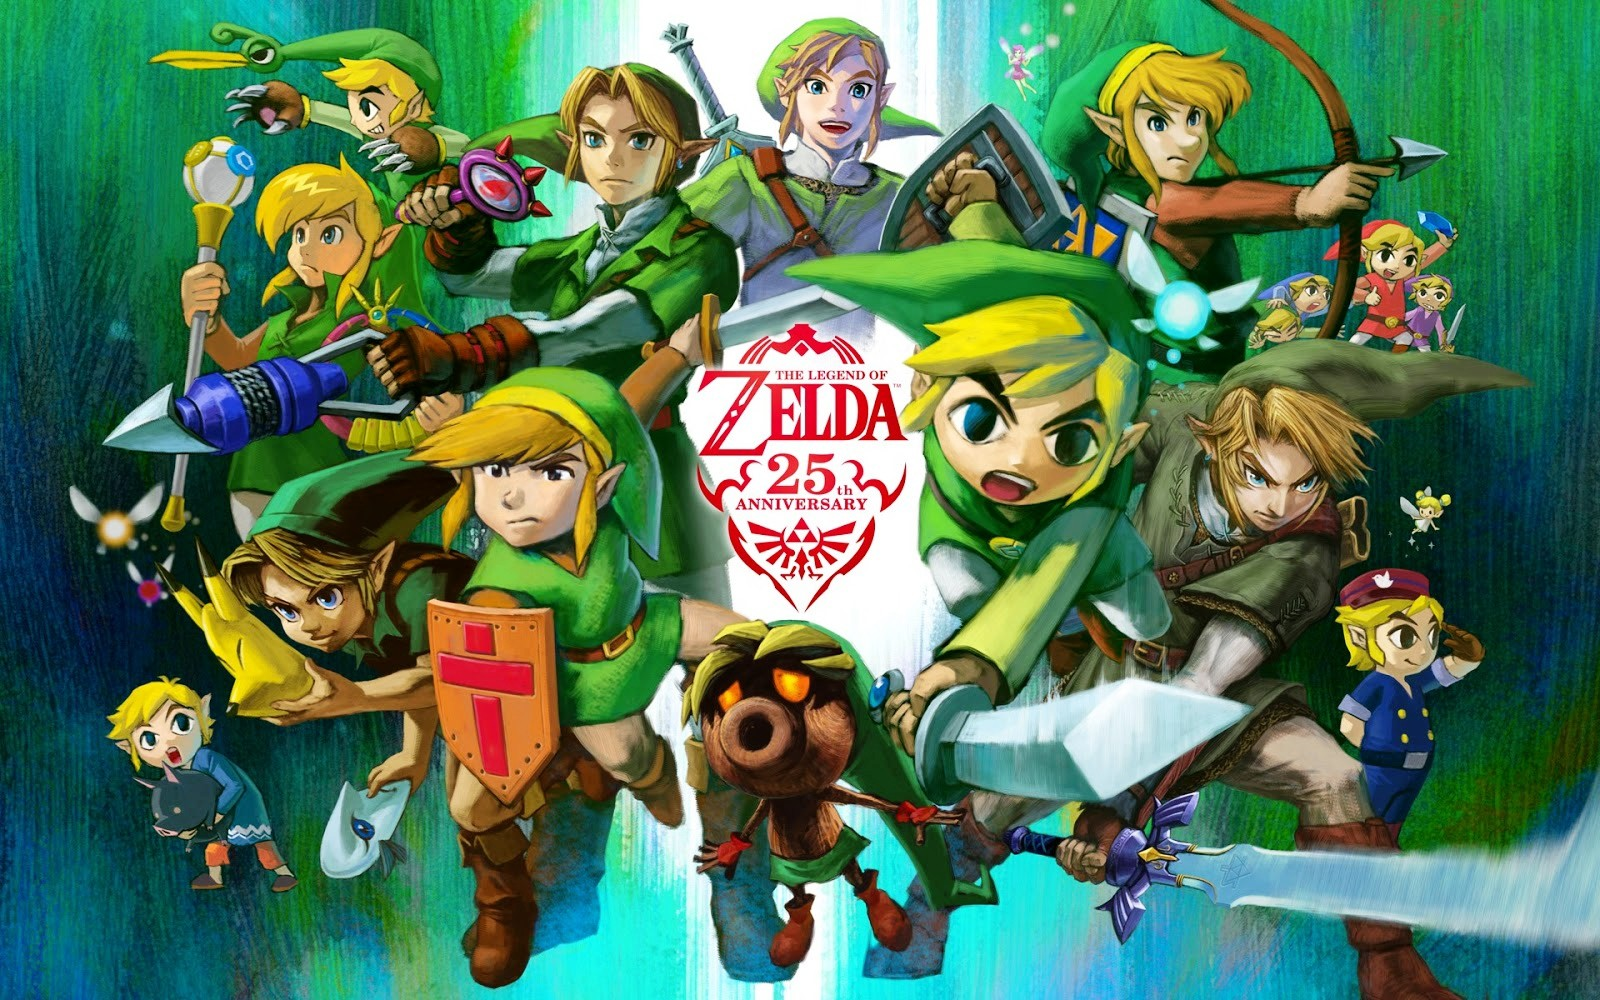 Top Ten 'Legend of Zelda' Games